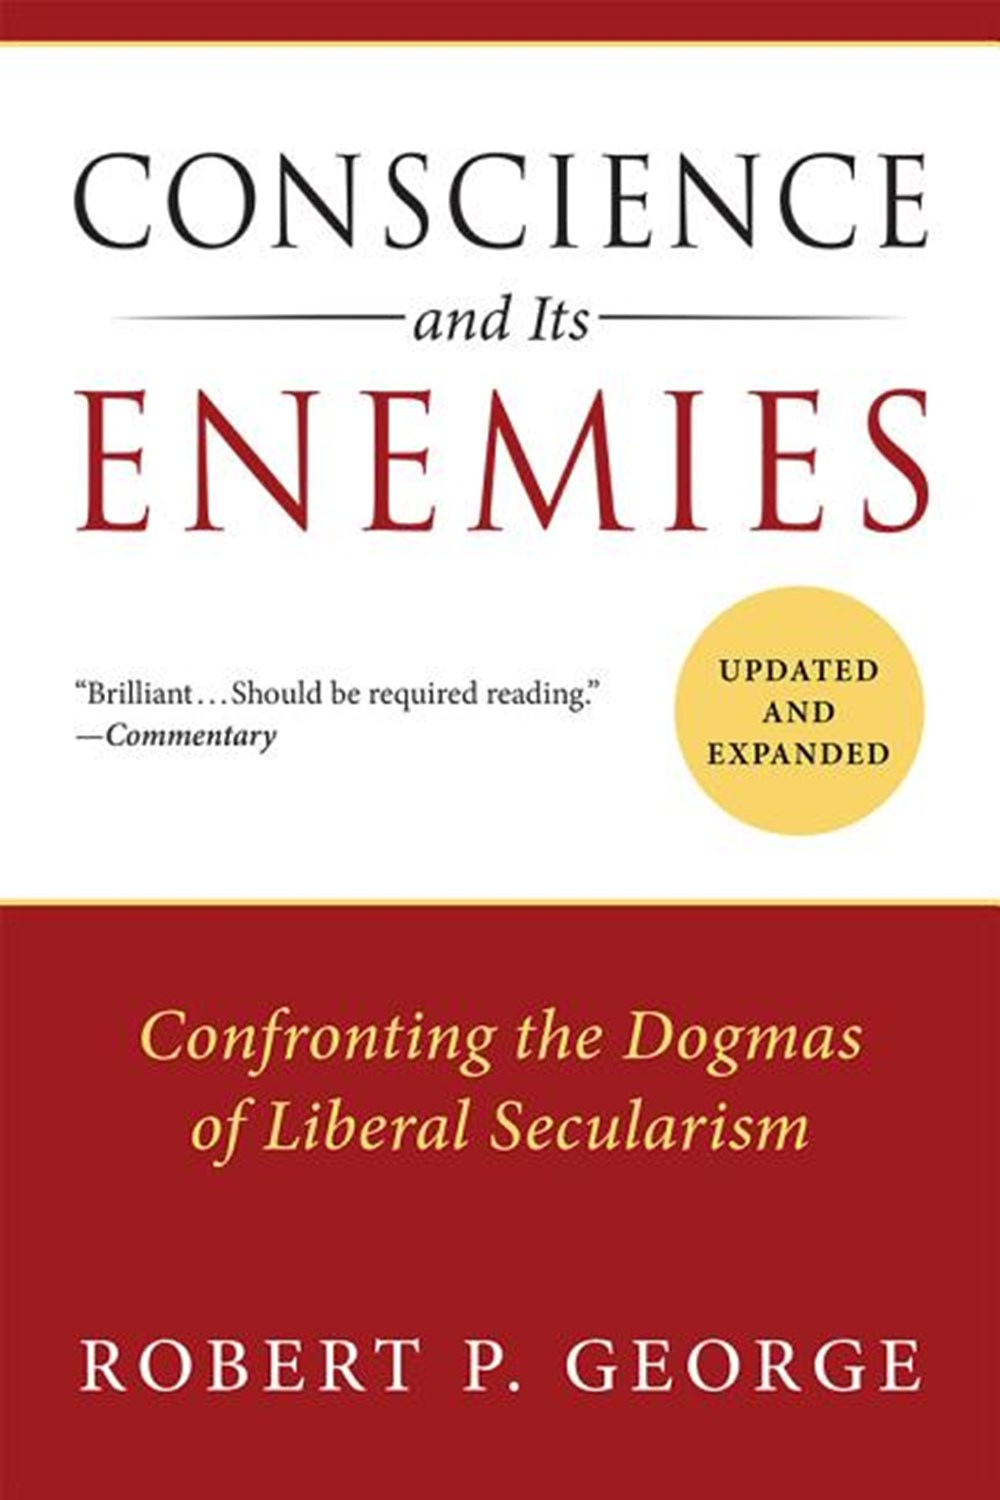 Conscience and Its Enemies Confronting the Dogmas of Liberal Secularism